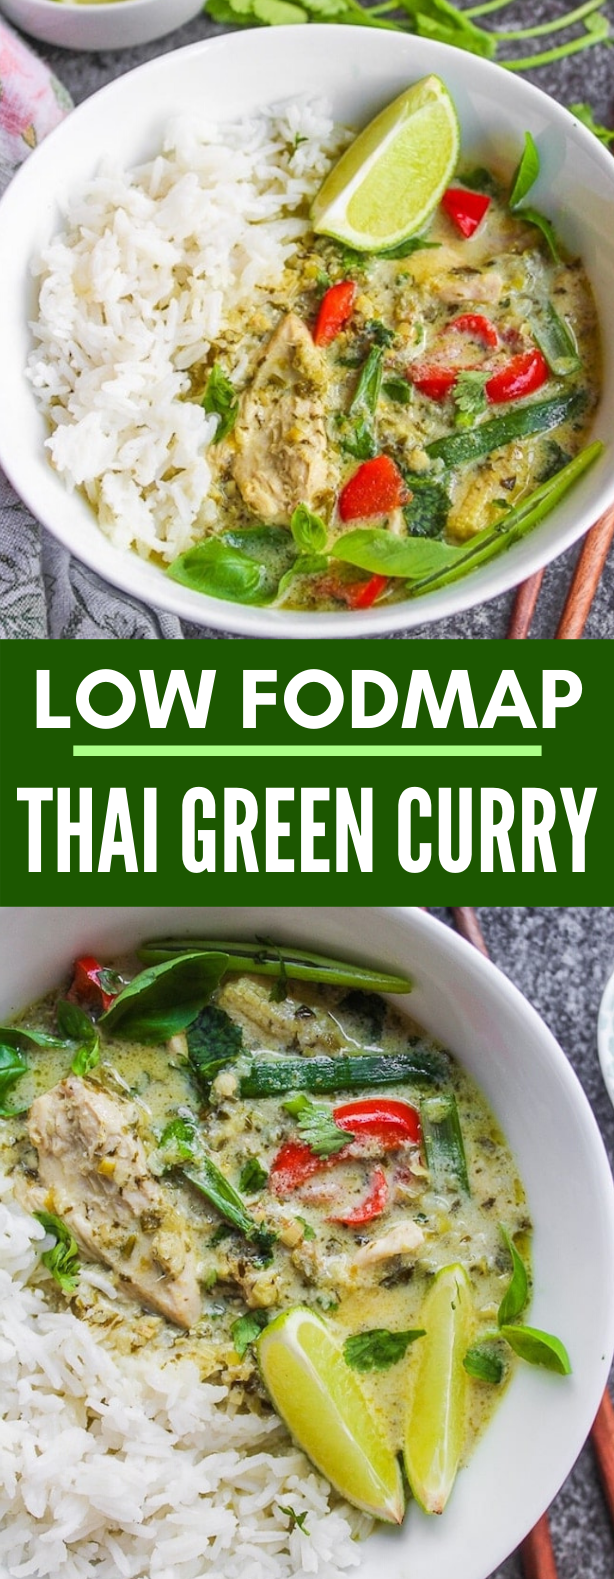 LOW FODMAP THAI GREEN CURRY #healthy #lunch